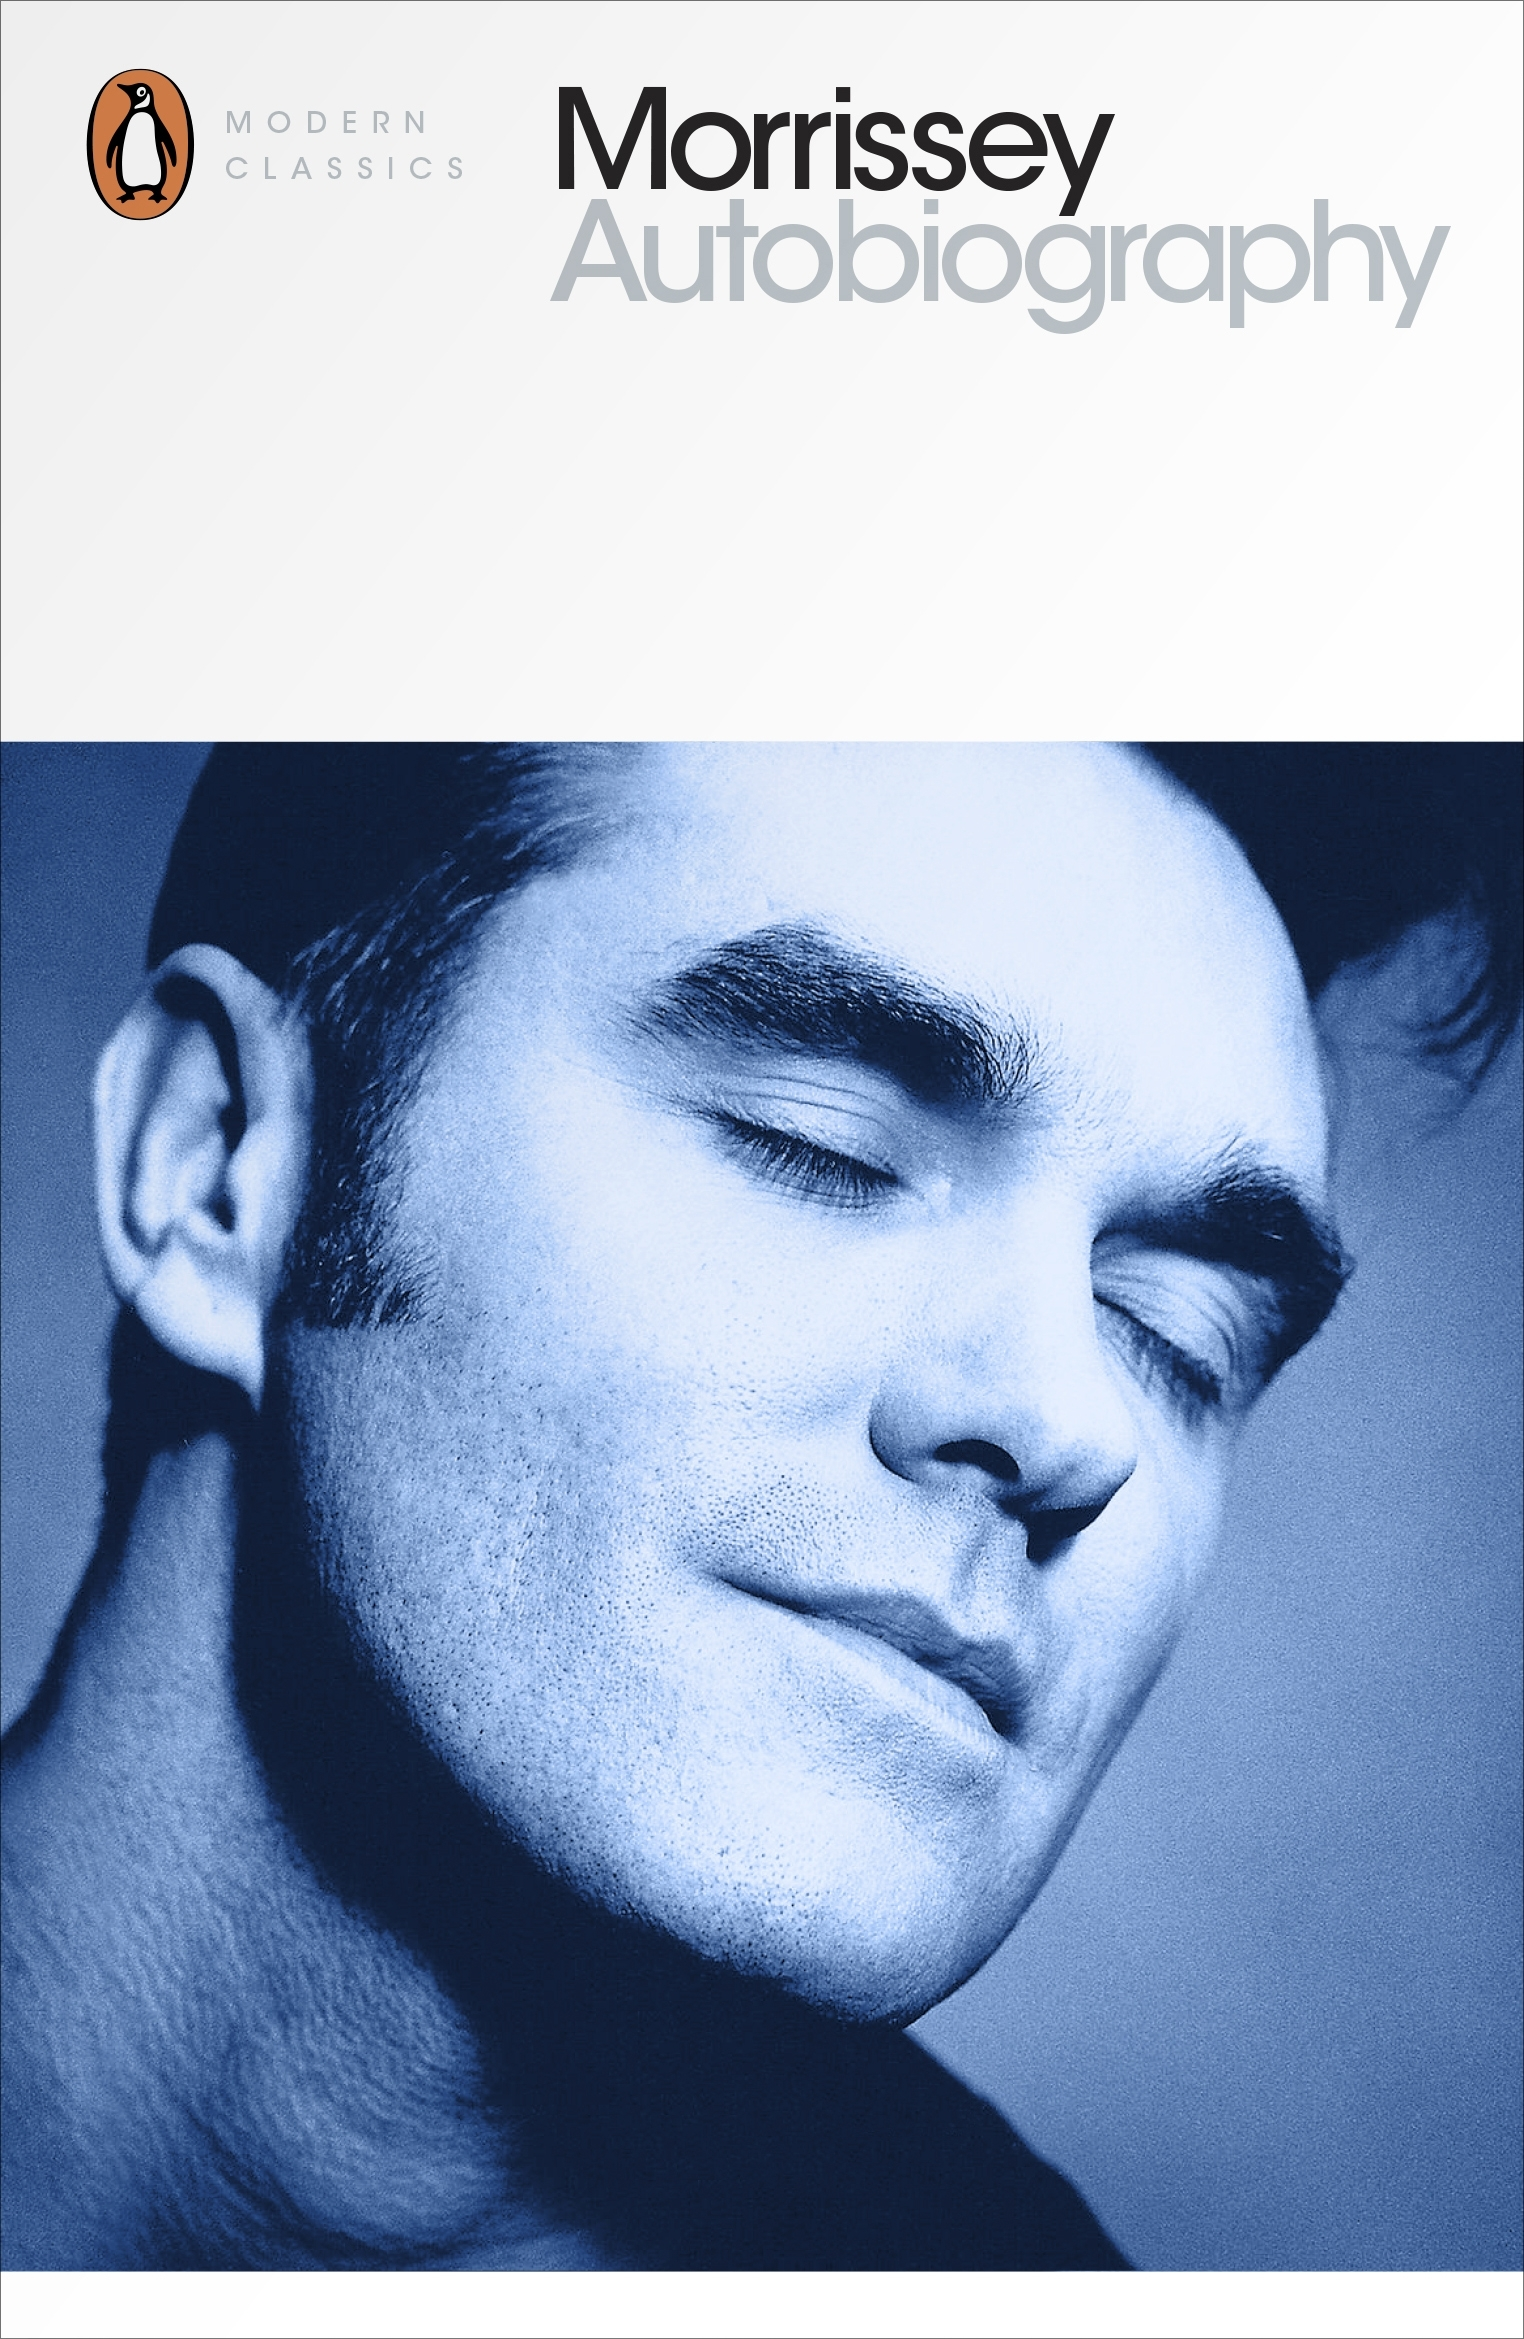 Autobiography by Morrissey cover